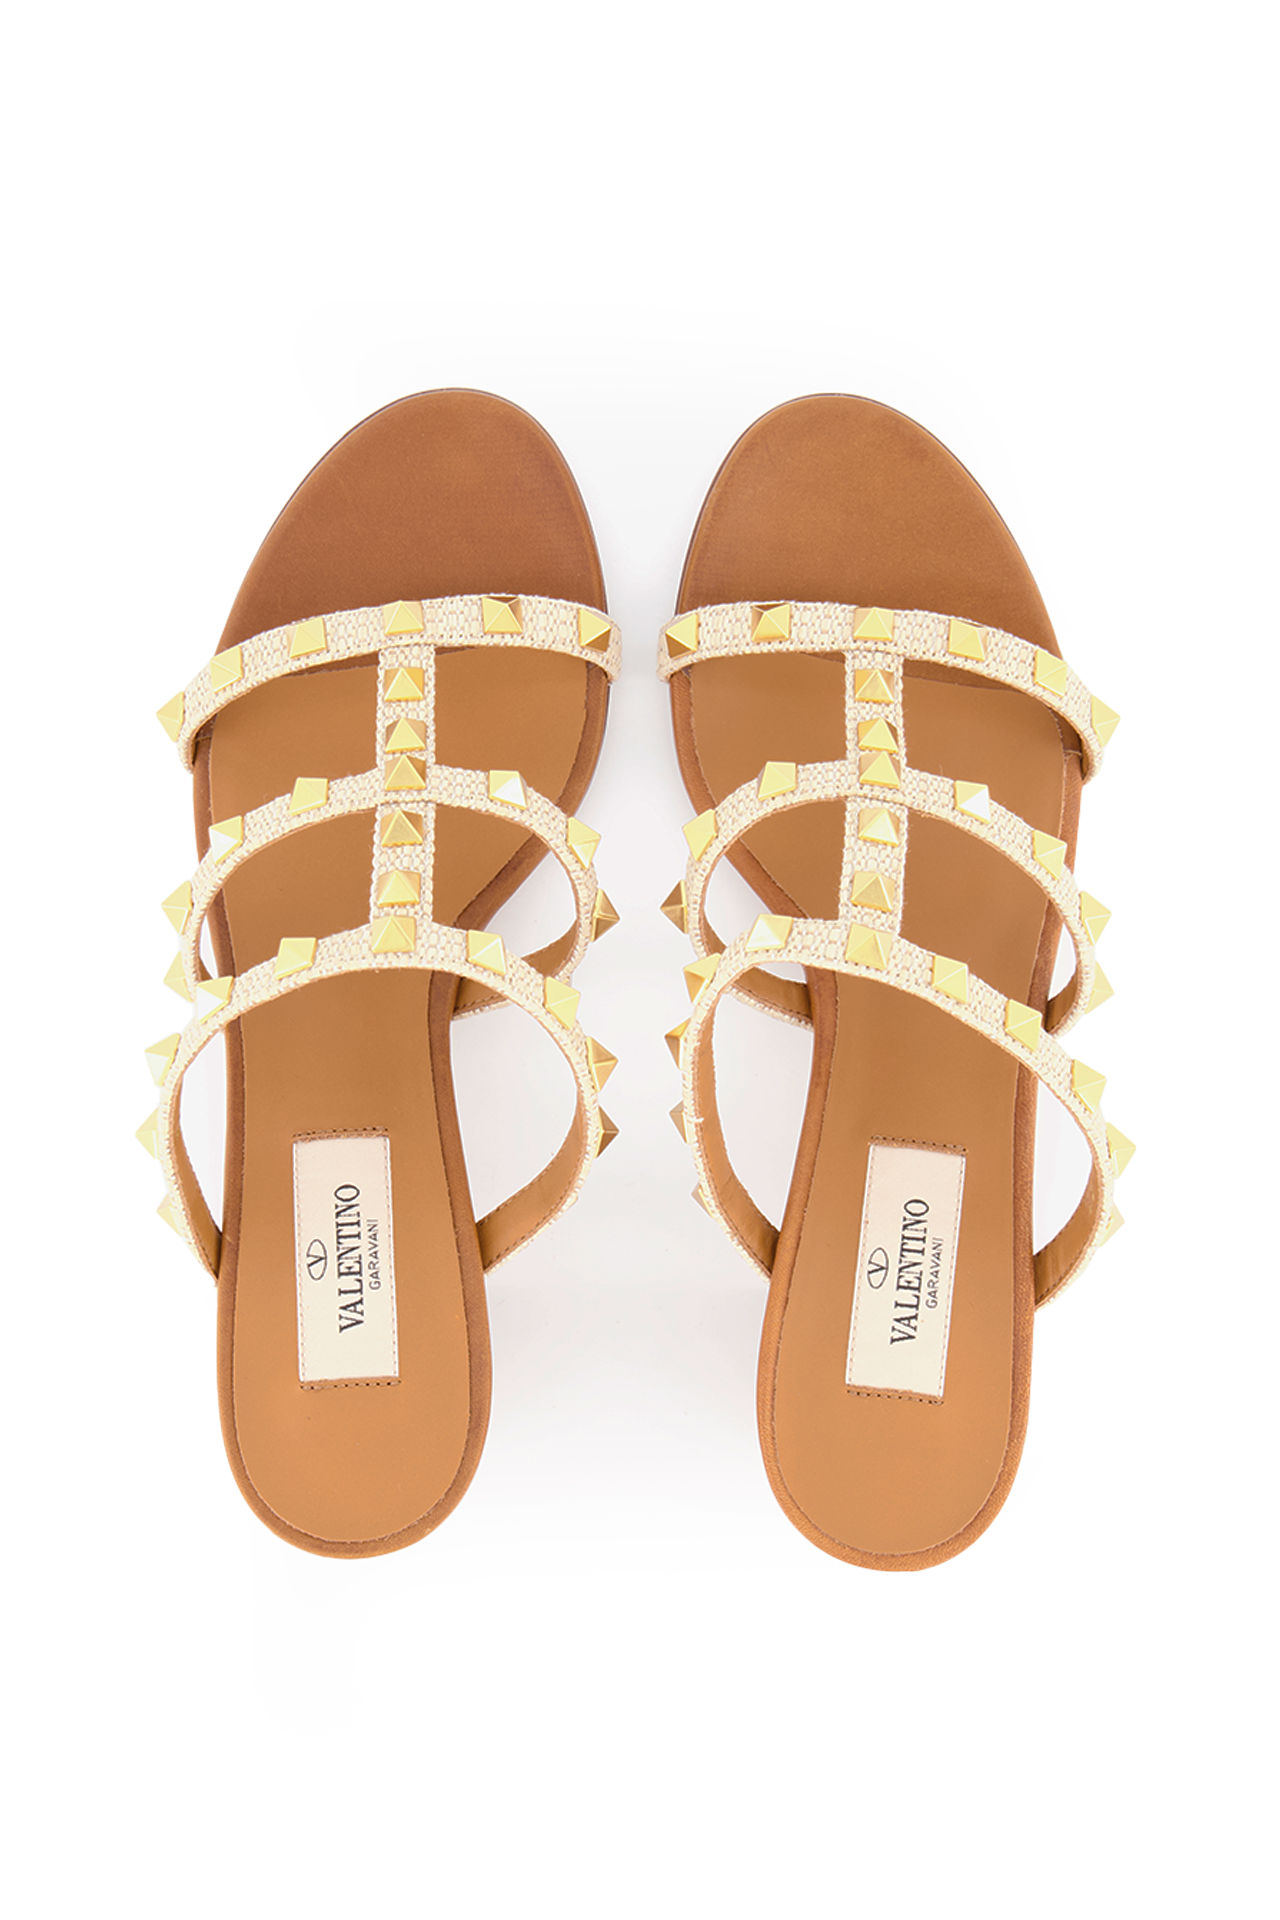 Toe Box Image of Valentino Rockstud 60mm Sandal in Naturale Ambra